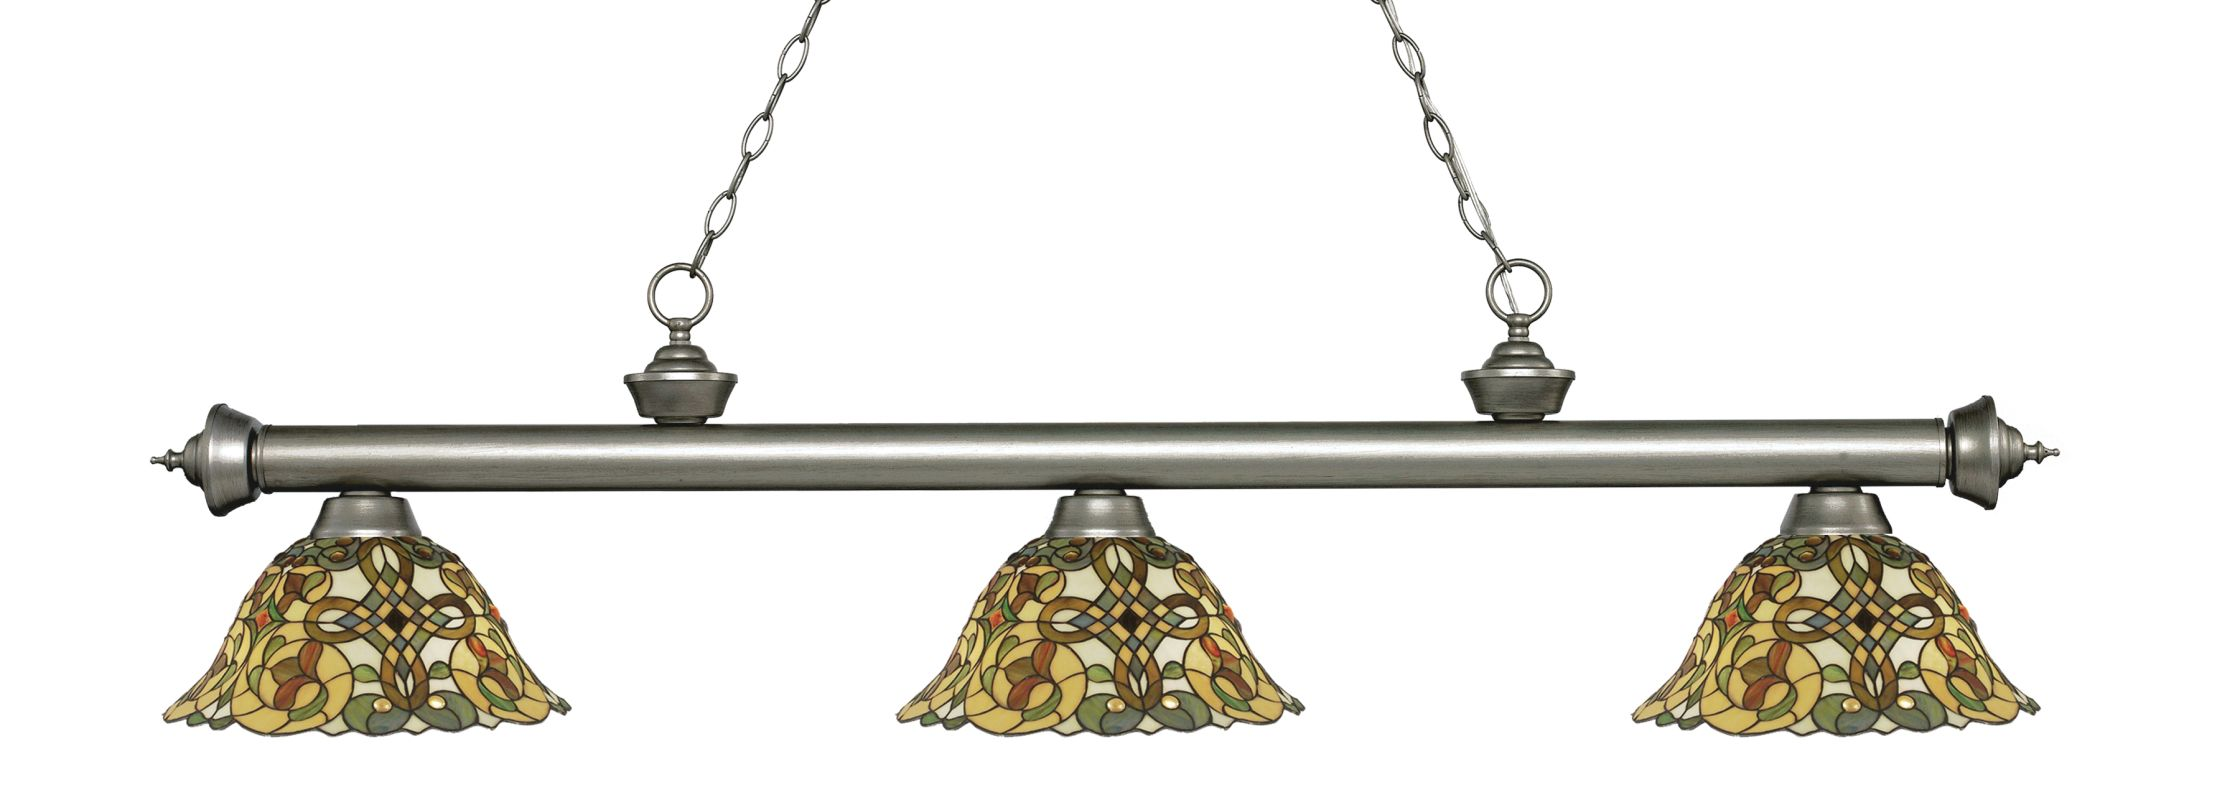 Z-Lite 200-3-R14A Riviera 3 Light Island/Billiard Chandelier with Sale $828.00 ITEM: bci2734555 ID#:200-3AS-R14A UPC: 685659052411 :